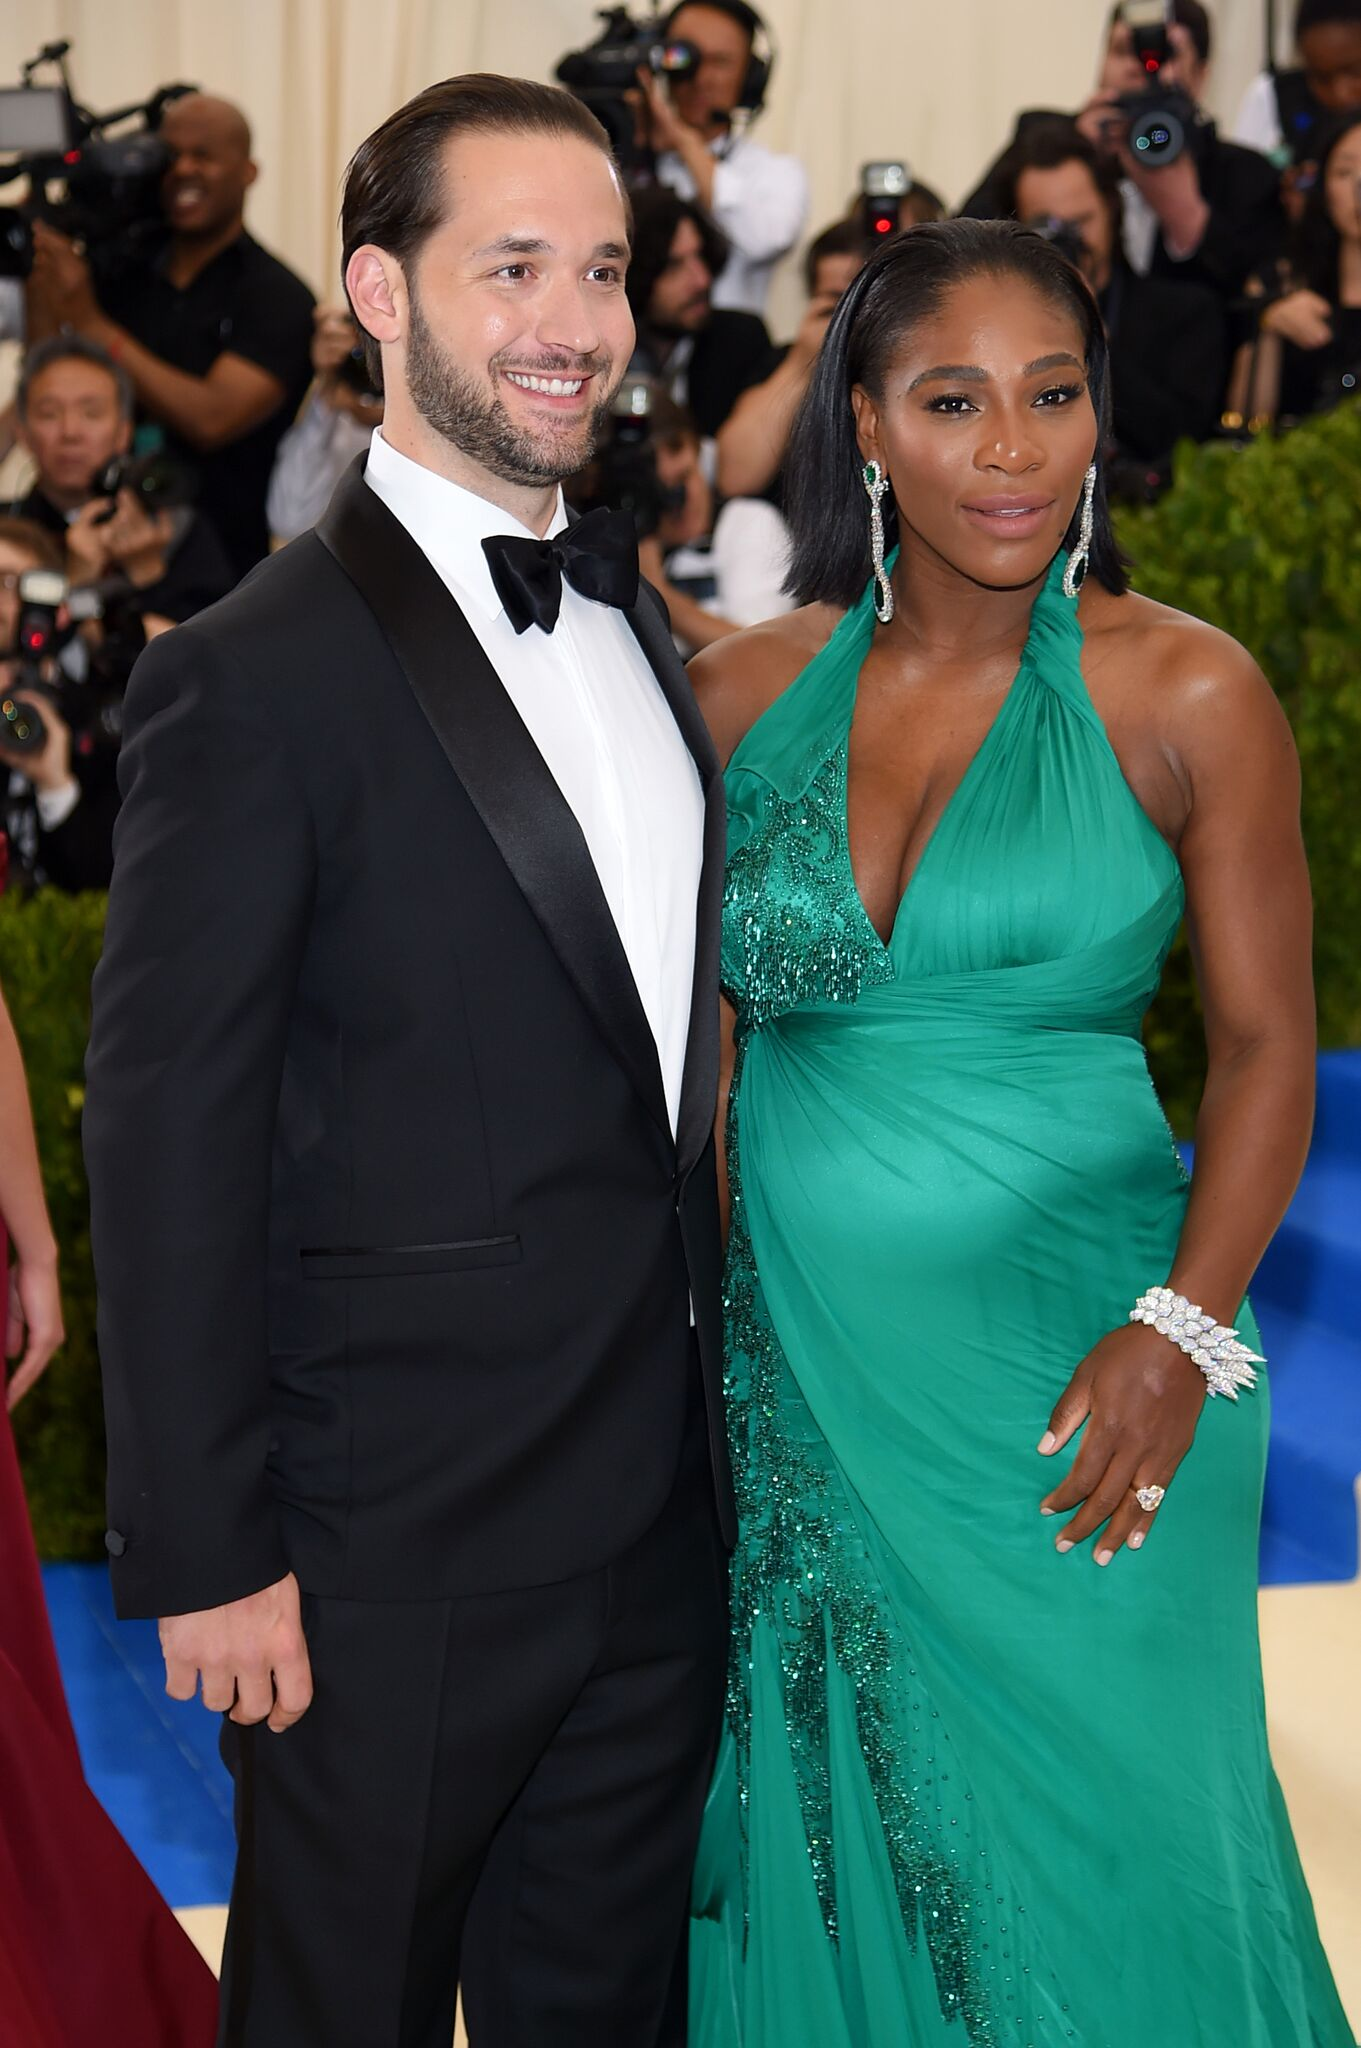 Alexis Ohanian and Serena Williams at the Metropolitan Museum of Art on May 1, 2017. | Photo: Getty Images